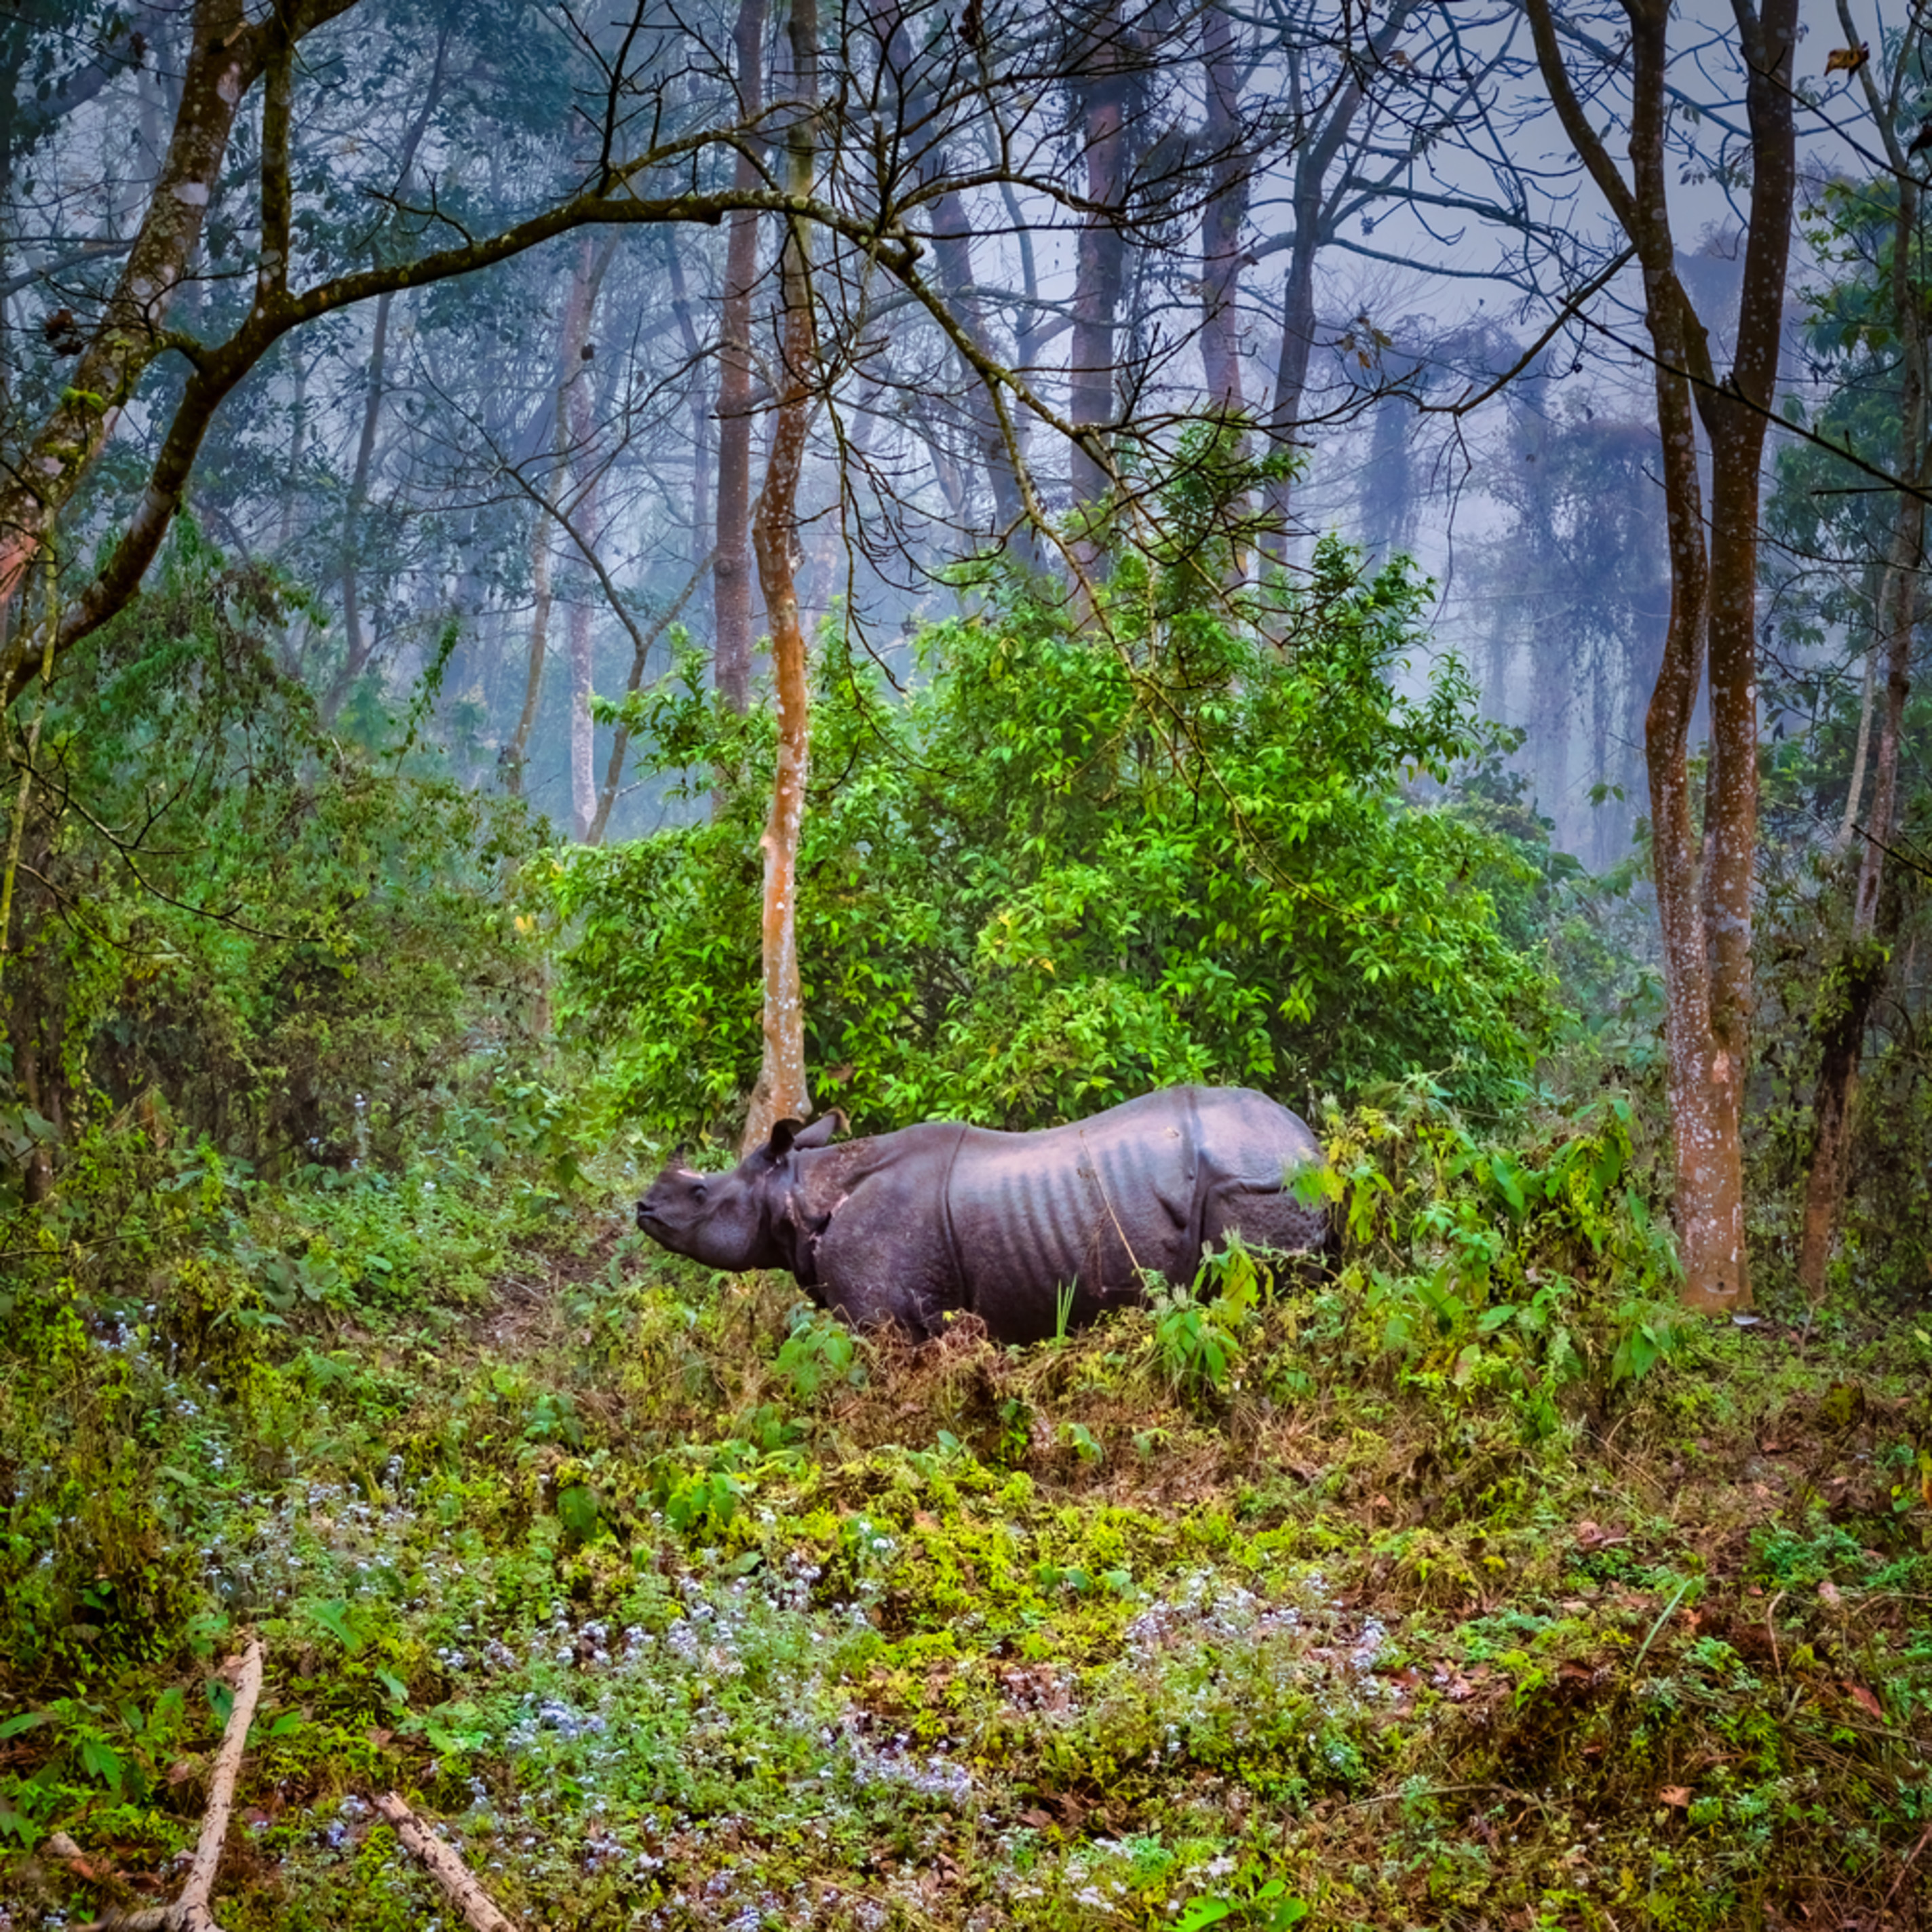 Indian rhino jpb9ji